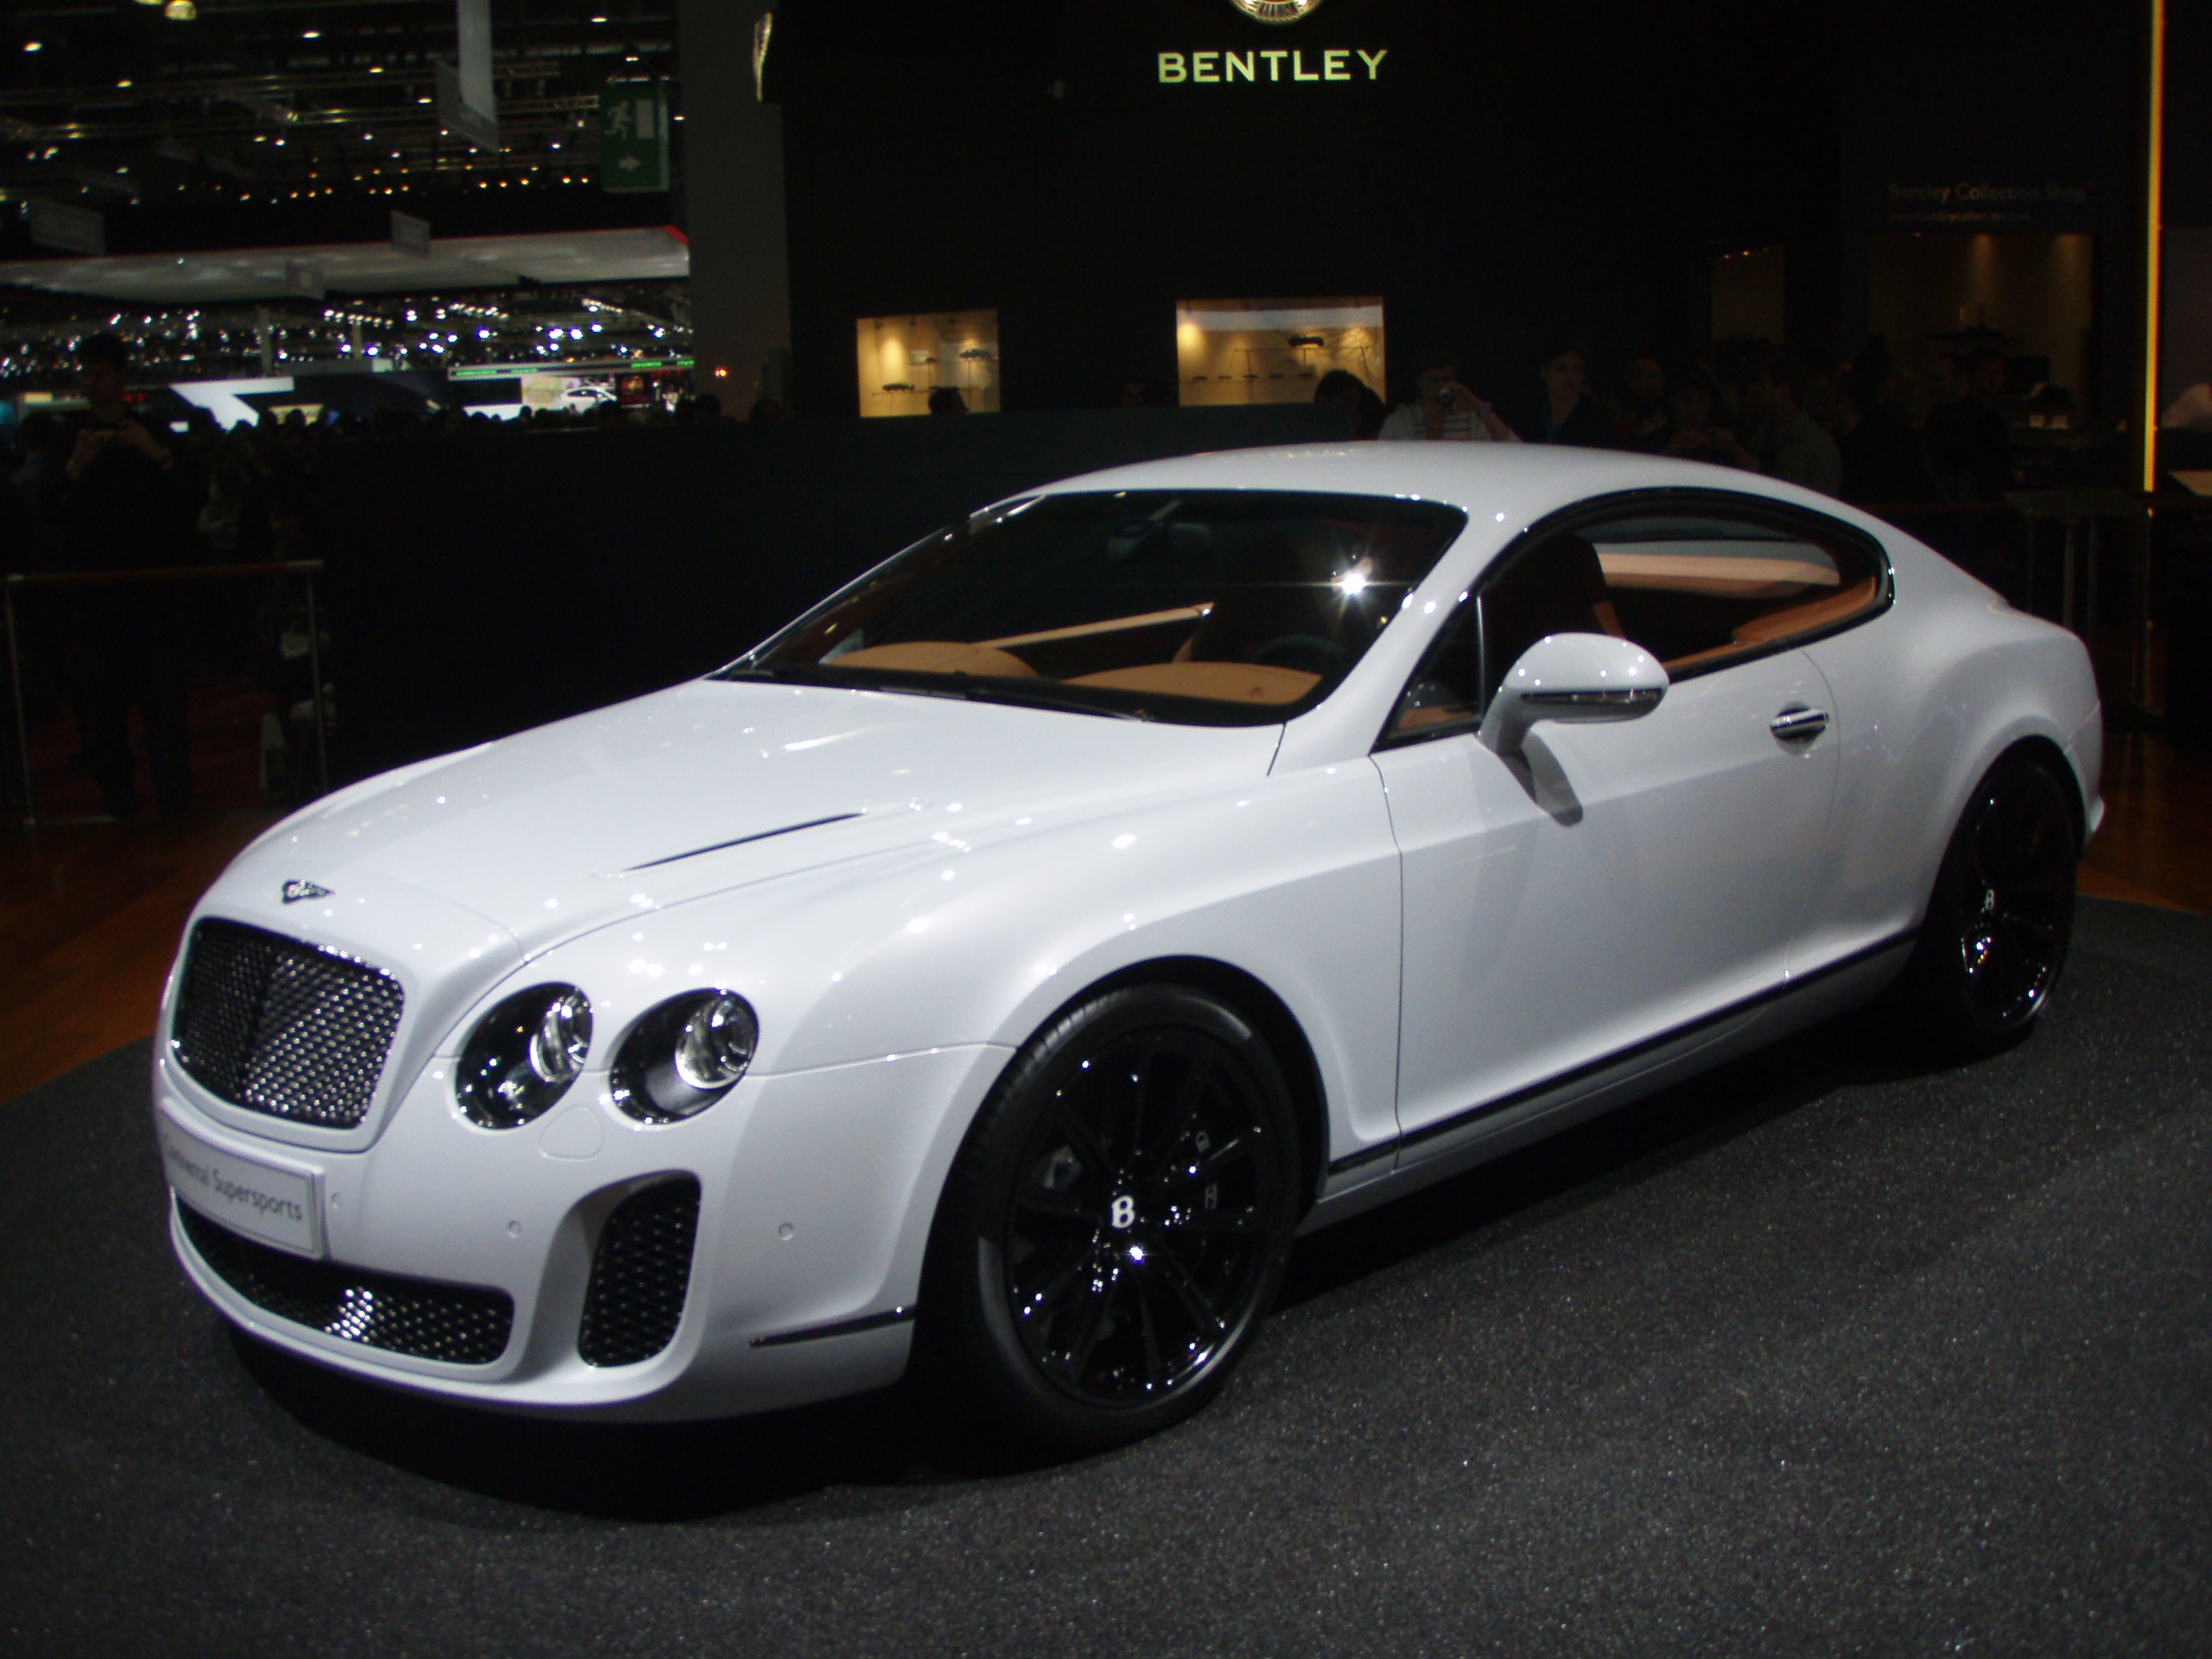 black march gt crop concours series new bentley for sale s continental